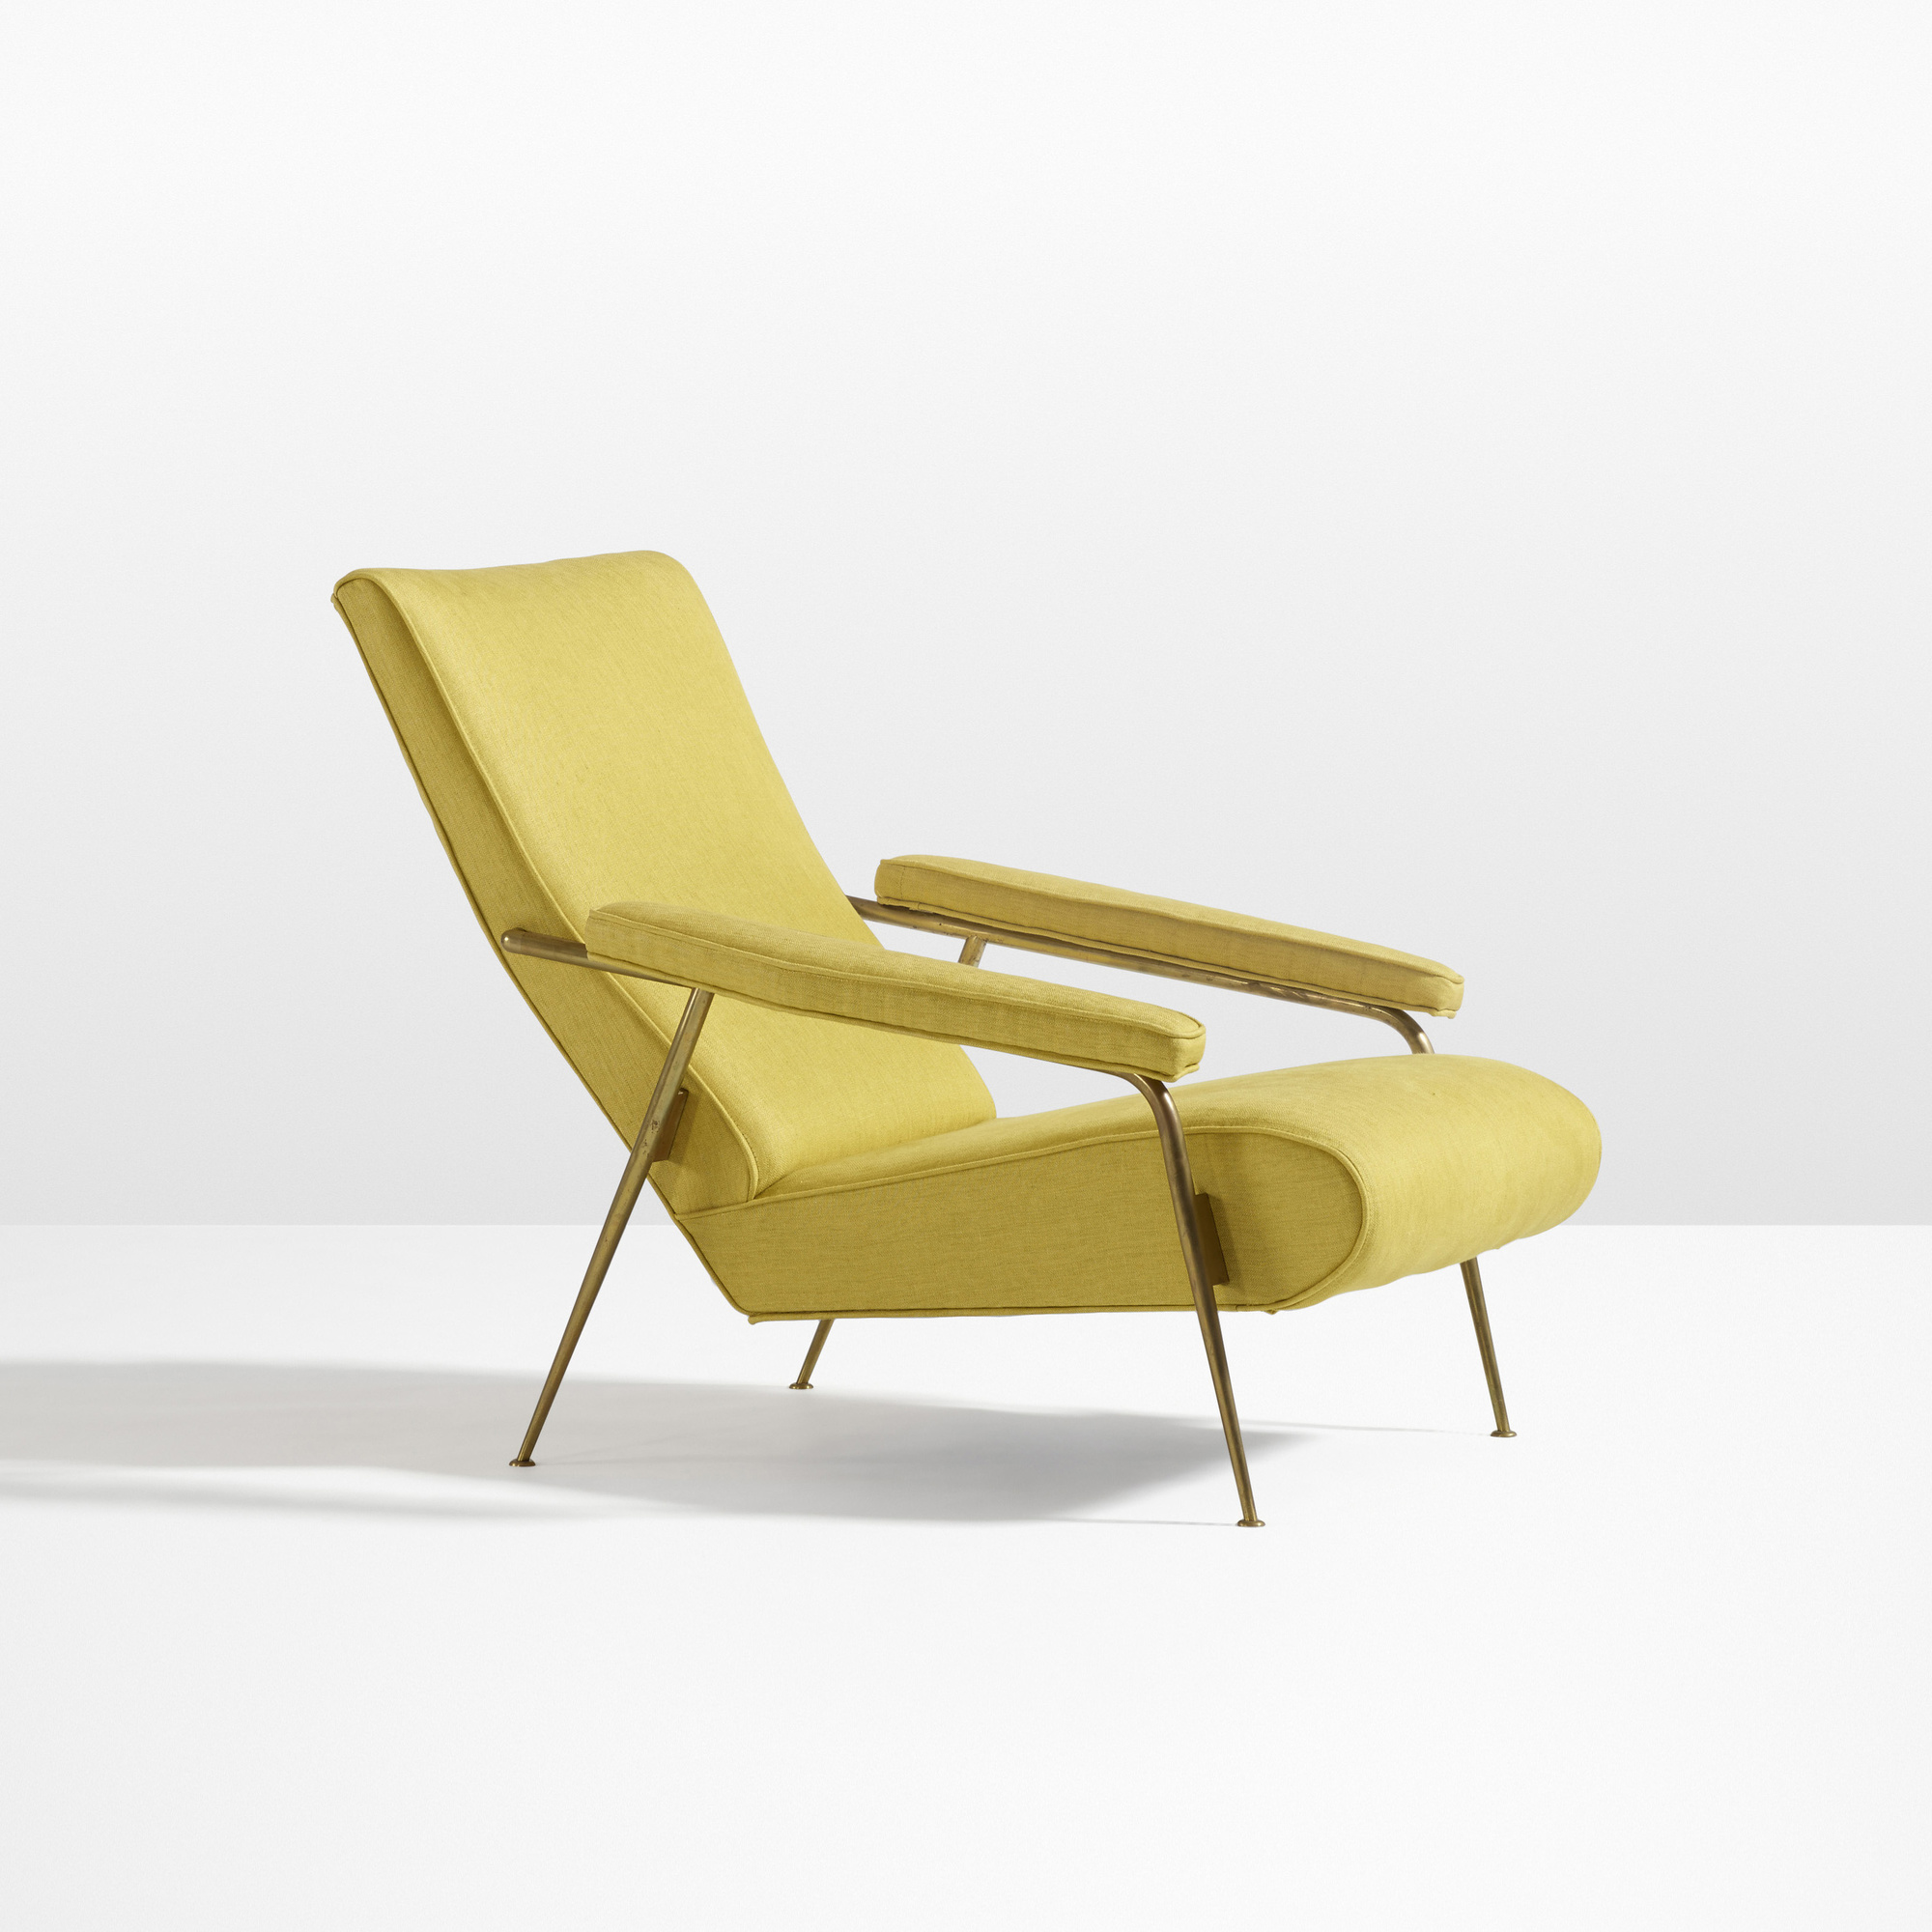 13: Gio Ponti / Distex lounge chair (1 of 5)